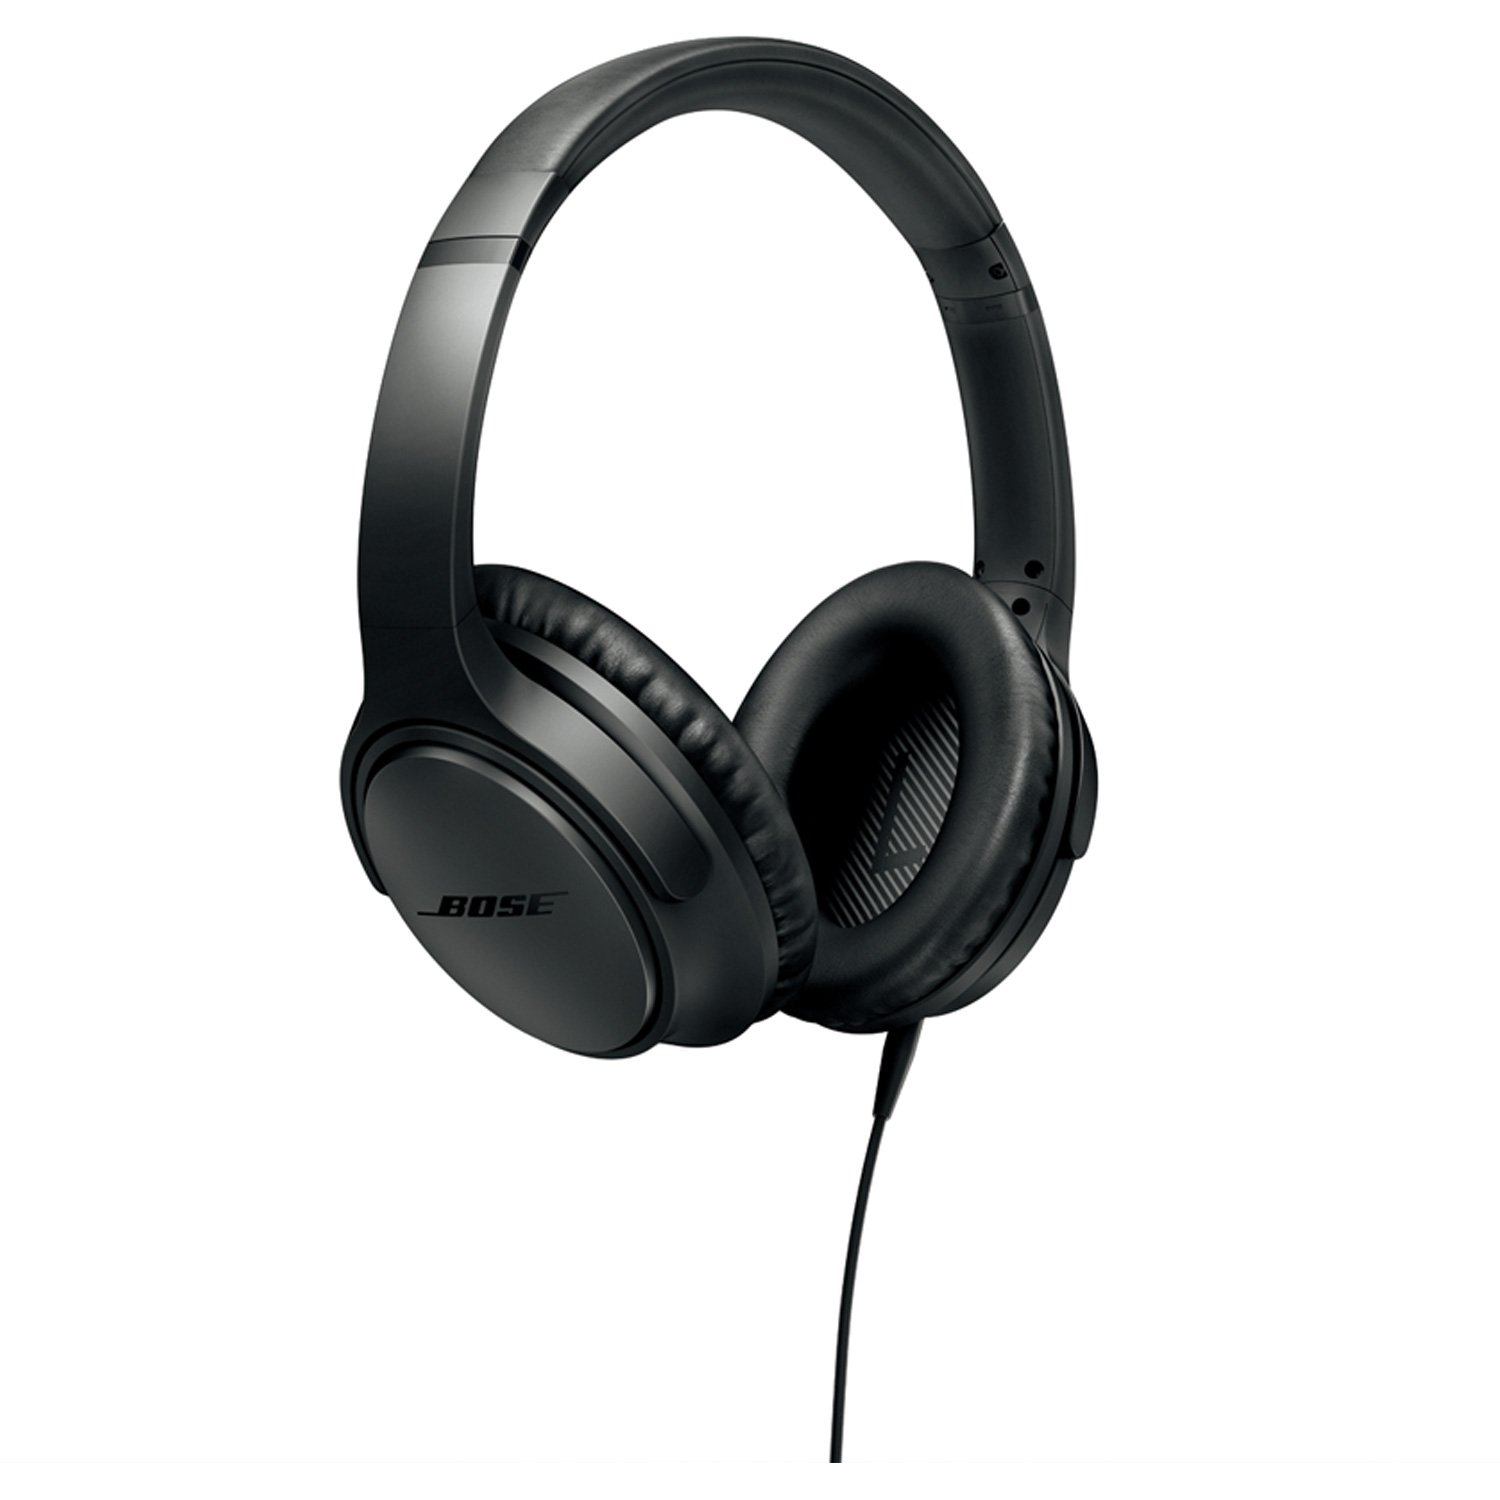 bose ultrasound. amazon.com: bose soundtrue around-ear headphones ii - samsung and android devices, charcoal: home audio \u0026 theater ultrasound t